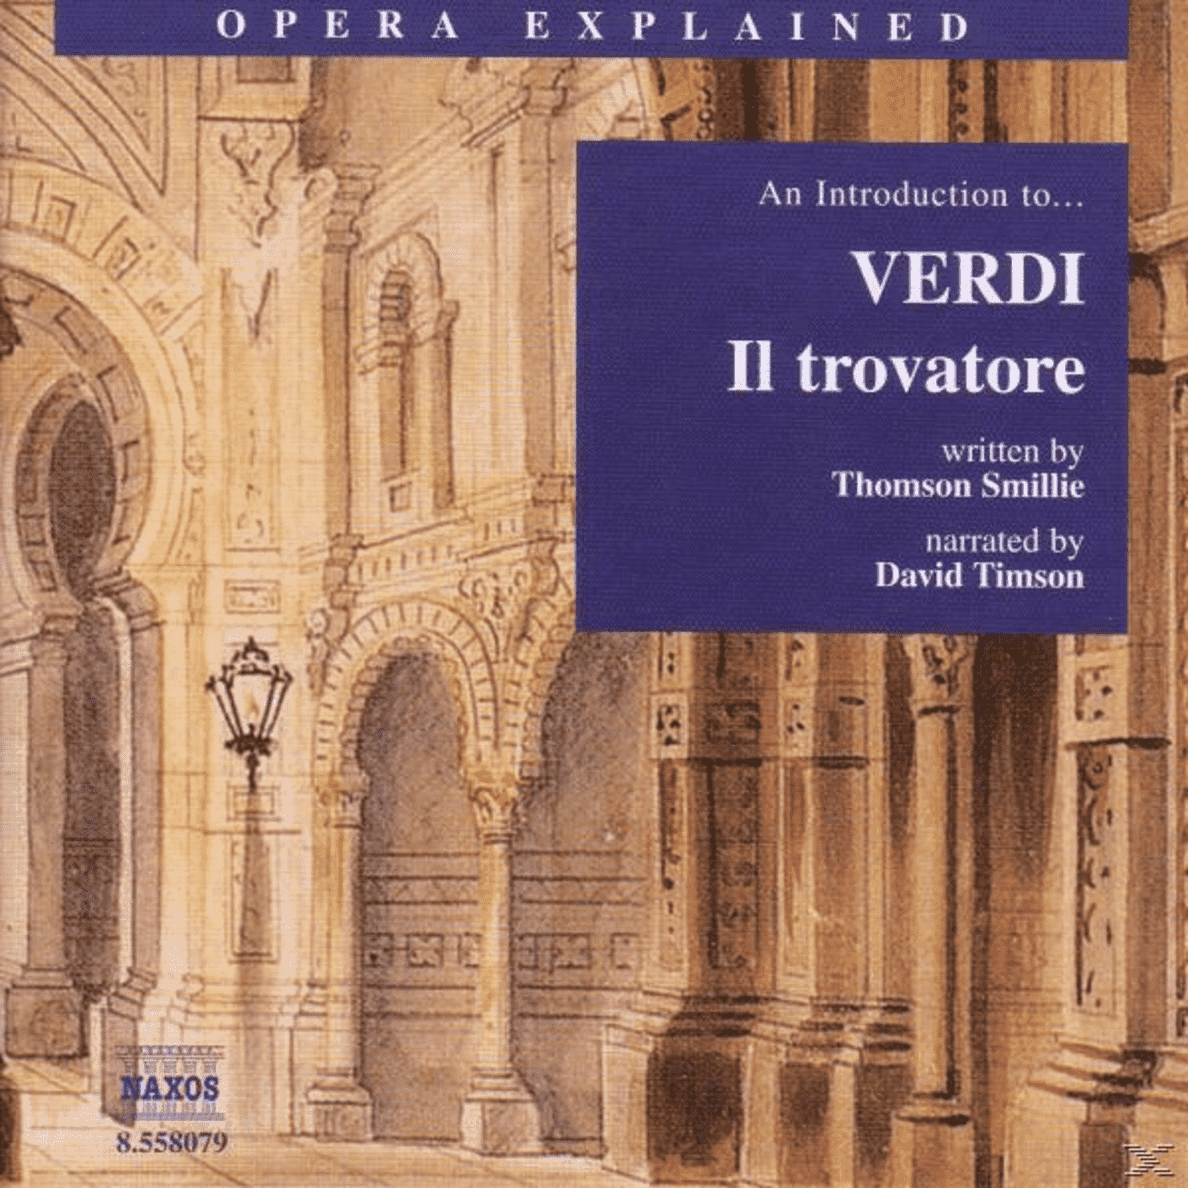 VARIOUS, David Timson Introduction To Il Trovatore Hörbuch